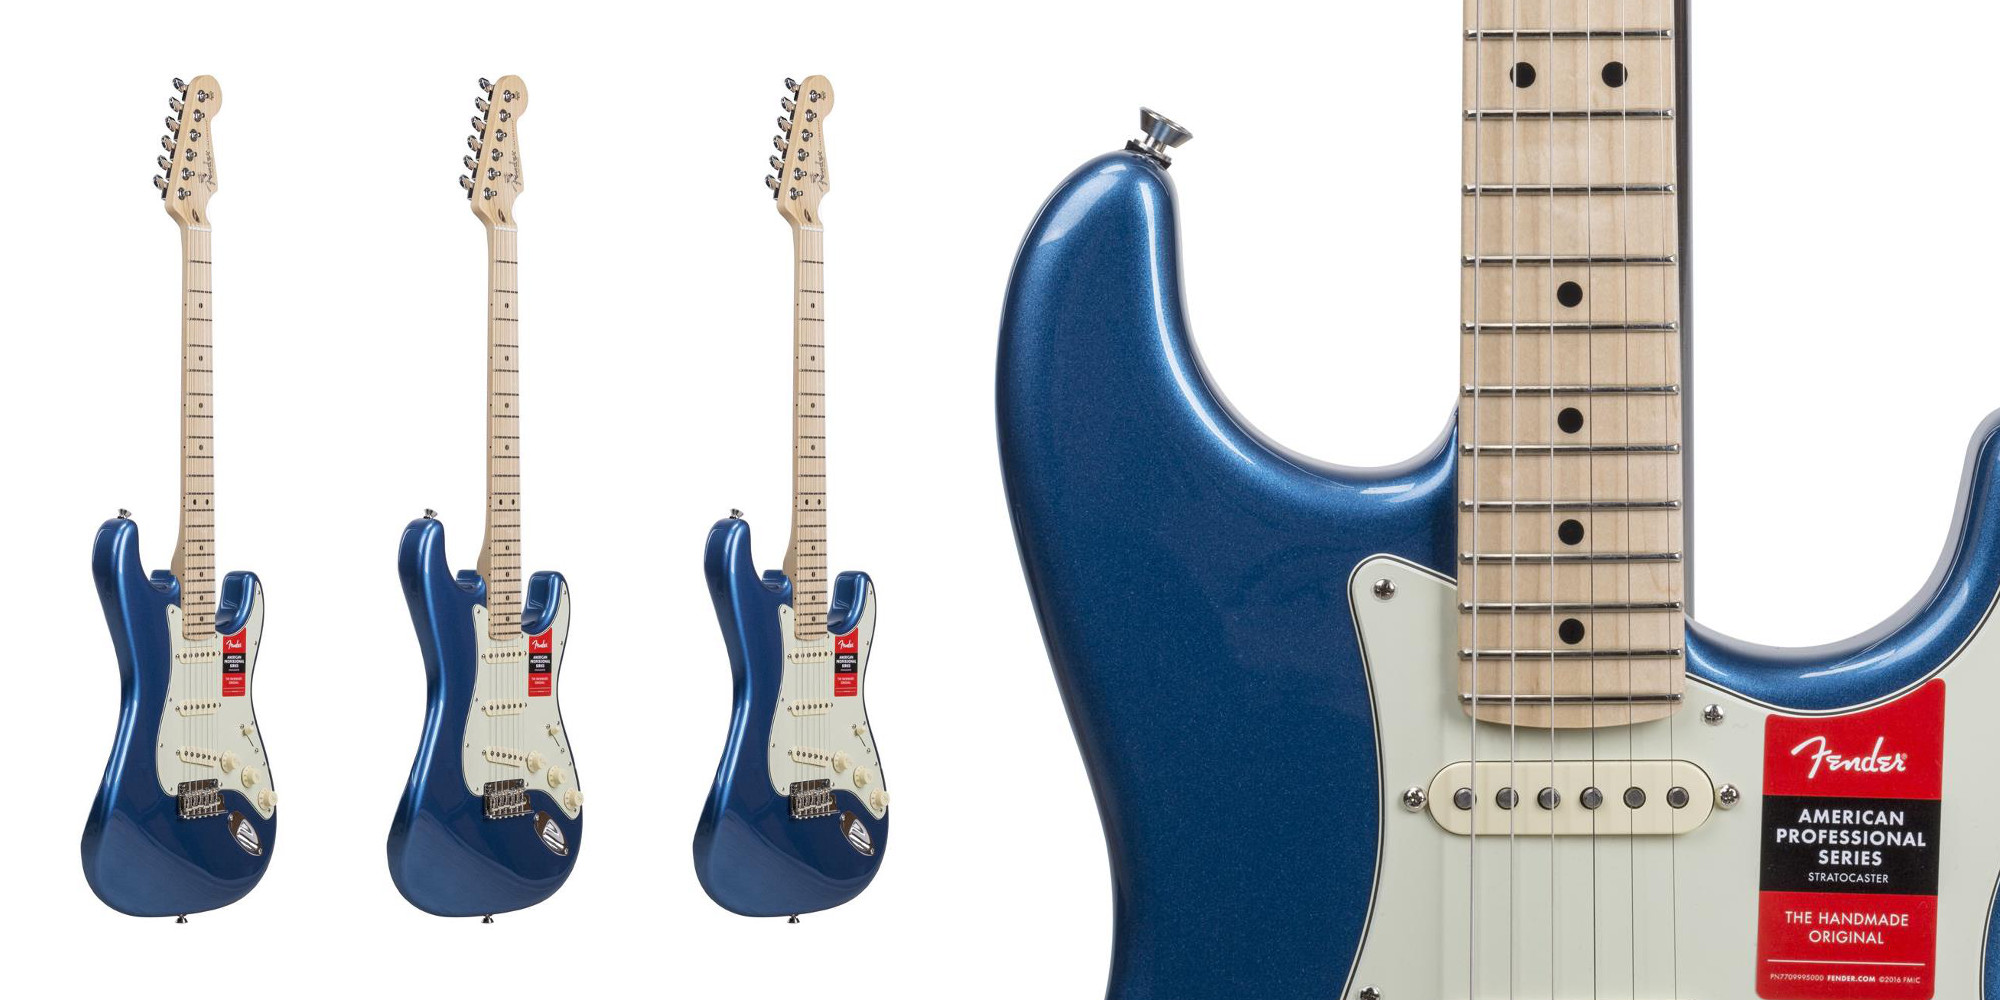 Fender American Strats are as much as $550 off today w/ deals starting from $1,099 shipped